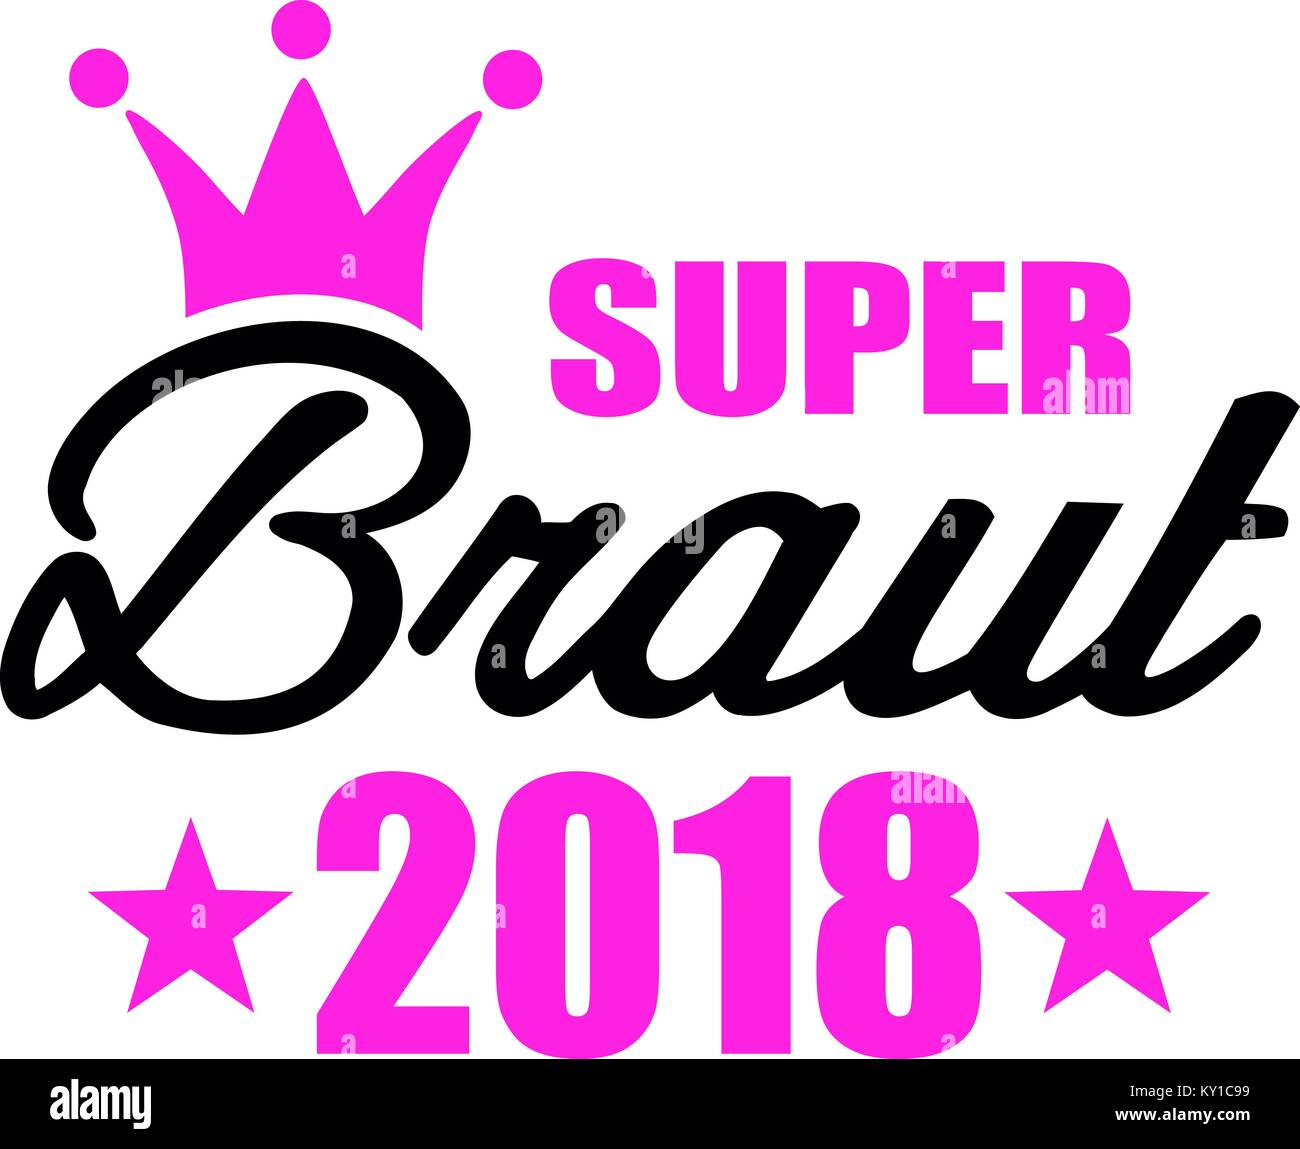 german word for super bride with crown and 2018 in pink and black